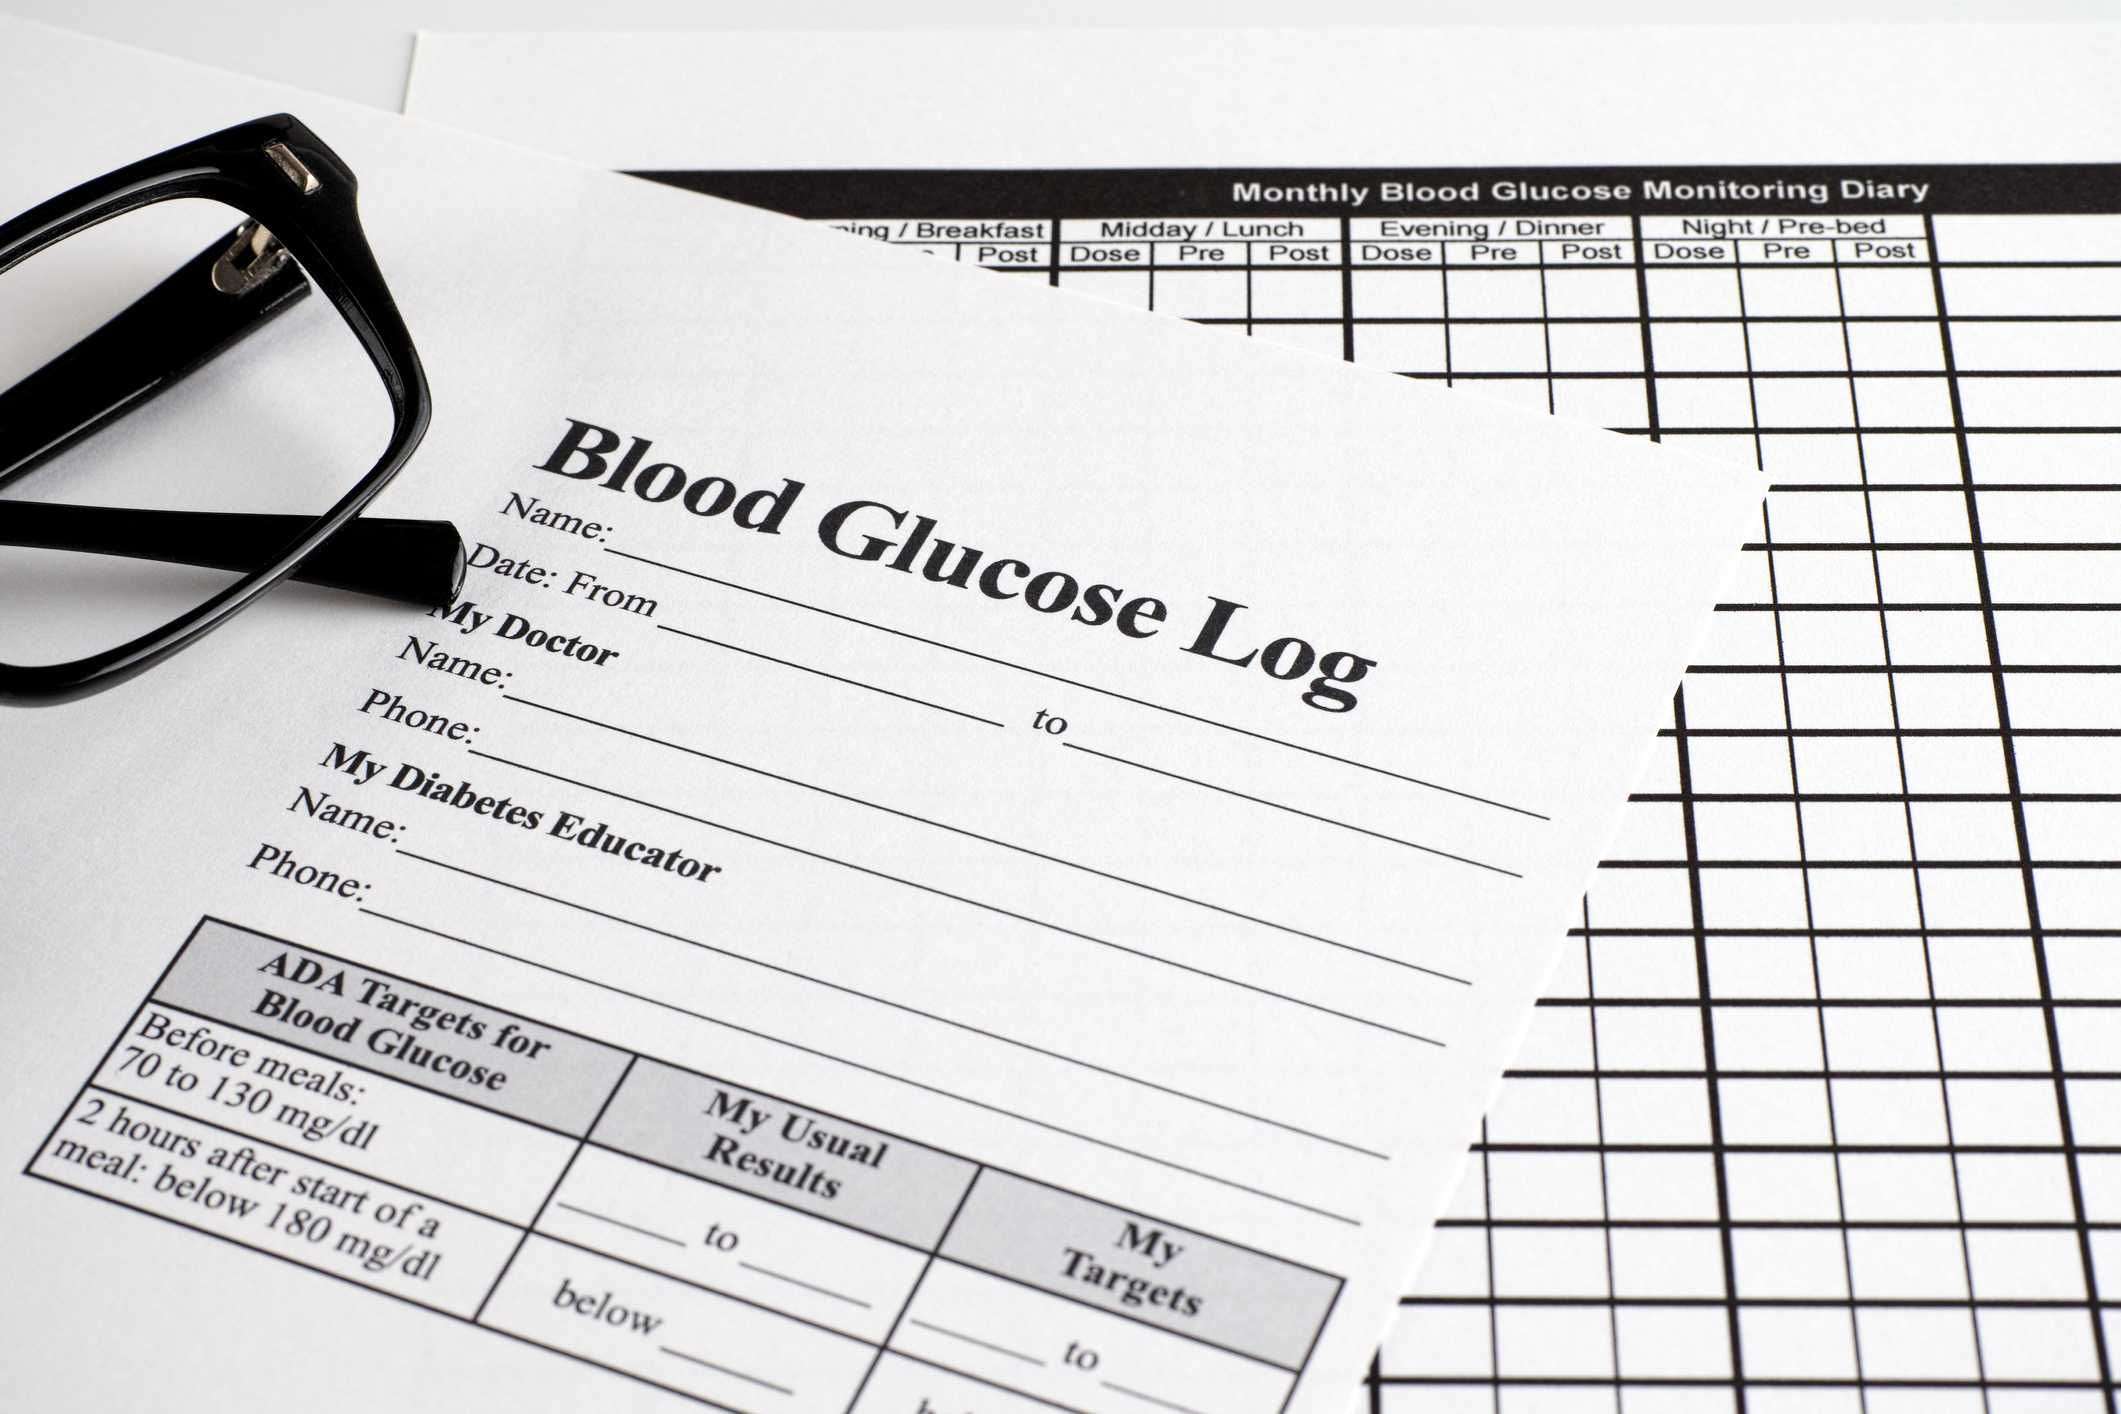 008 Dreaded Free Blood Sugar Log Template Pdf Design Full